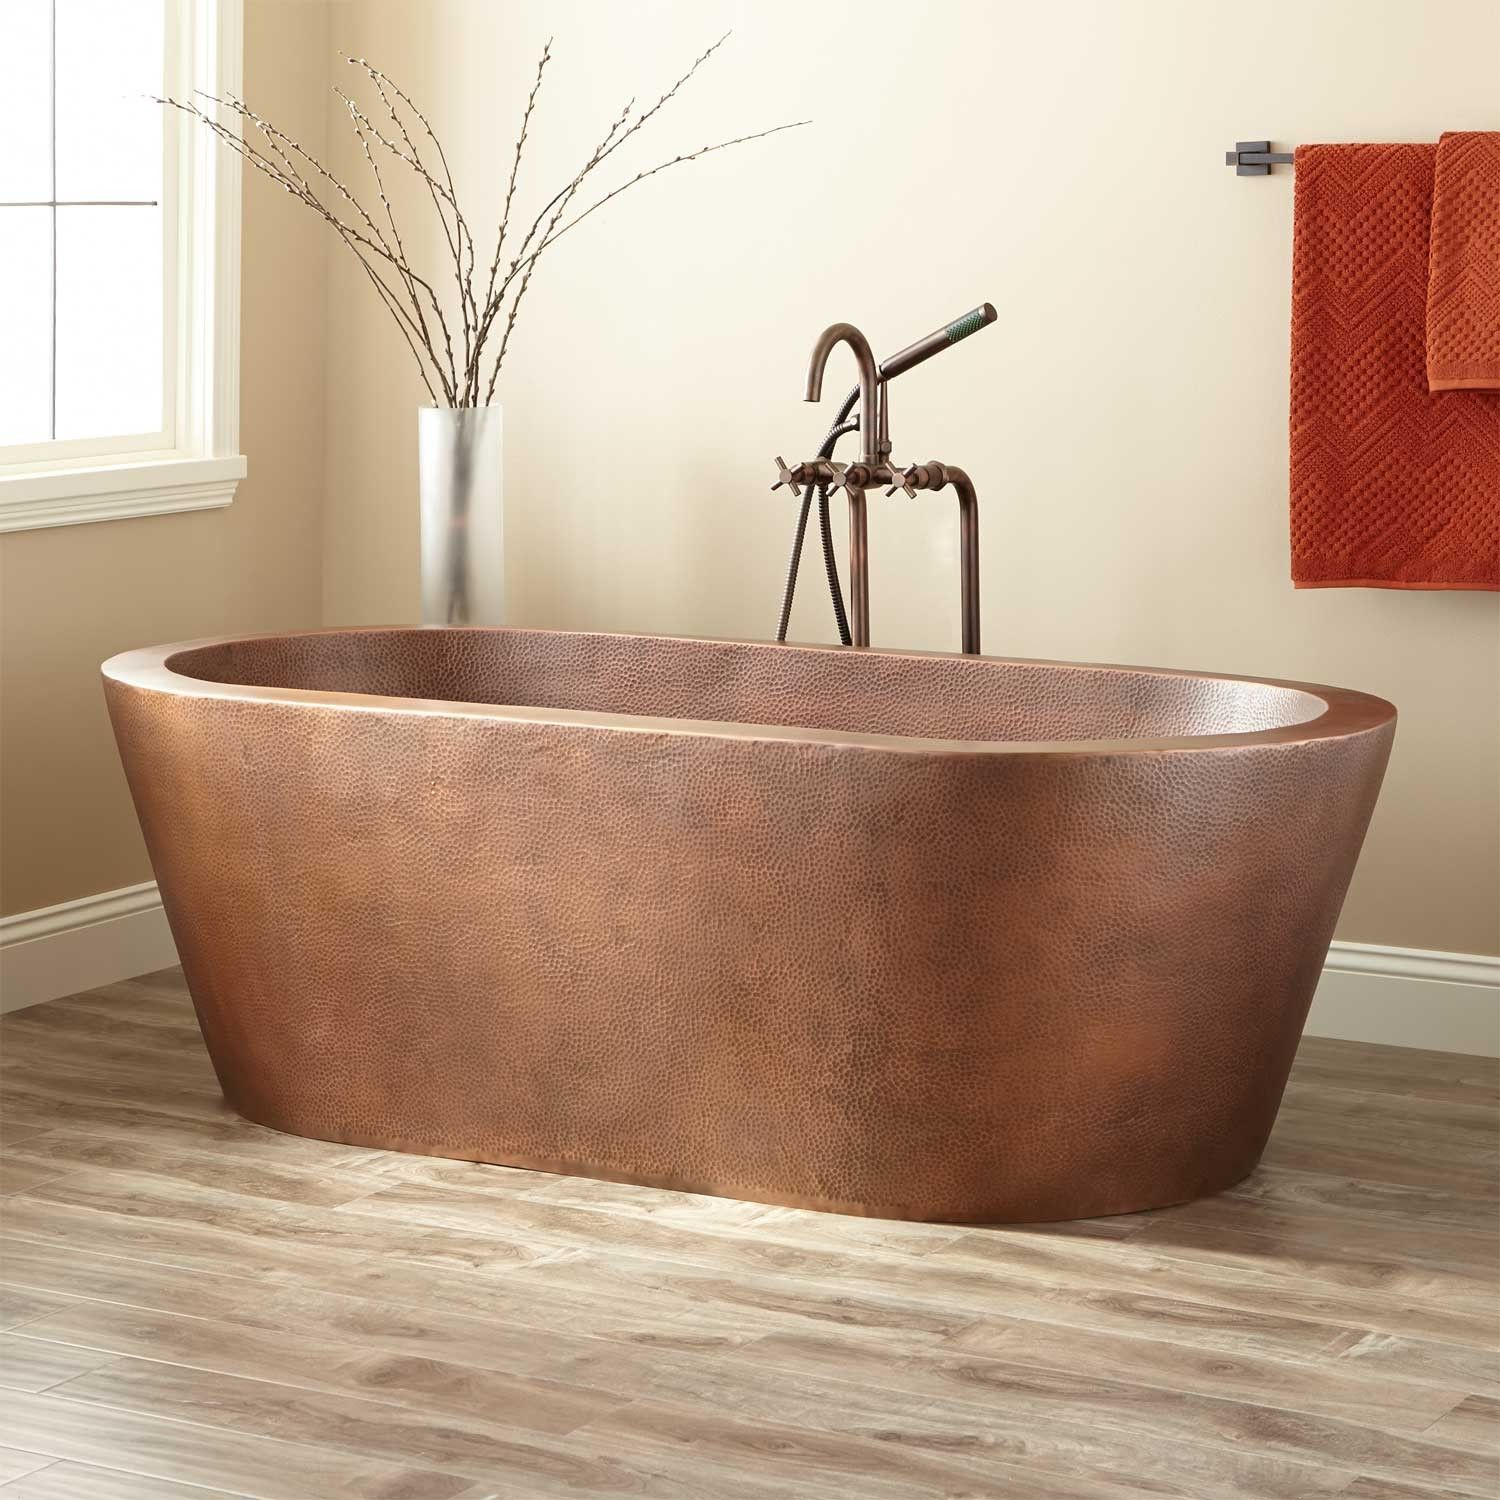 Master ensuite in oil rubbed bronze 69 collette for Free standing bath tubs